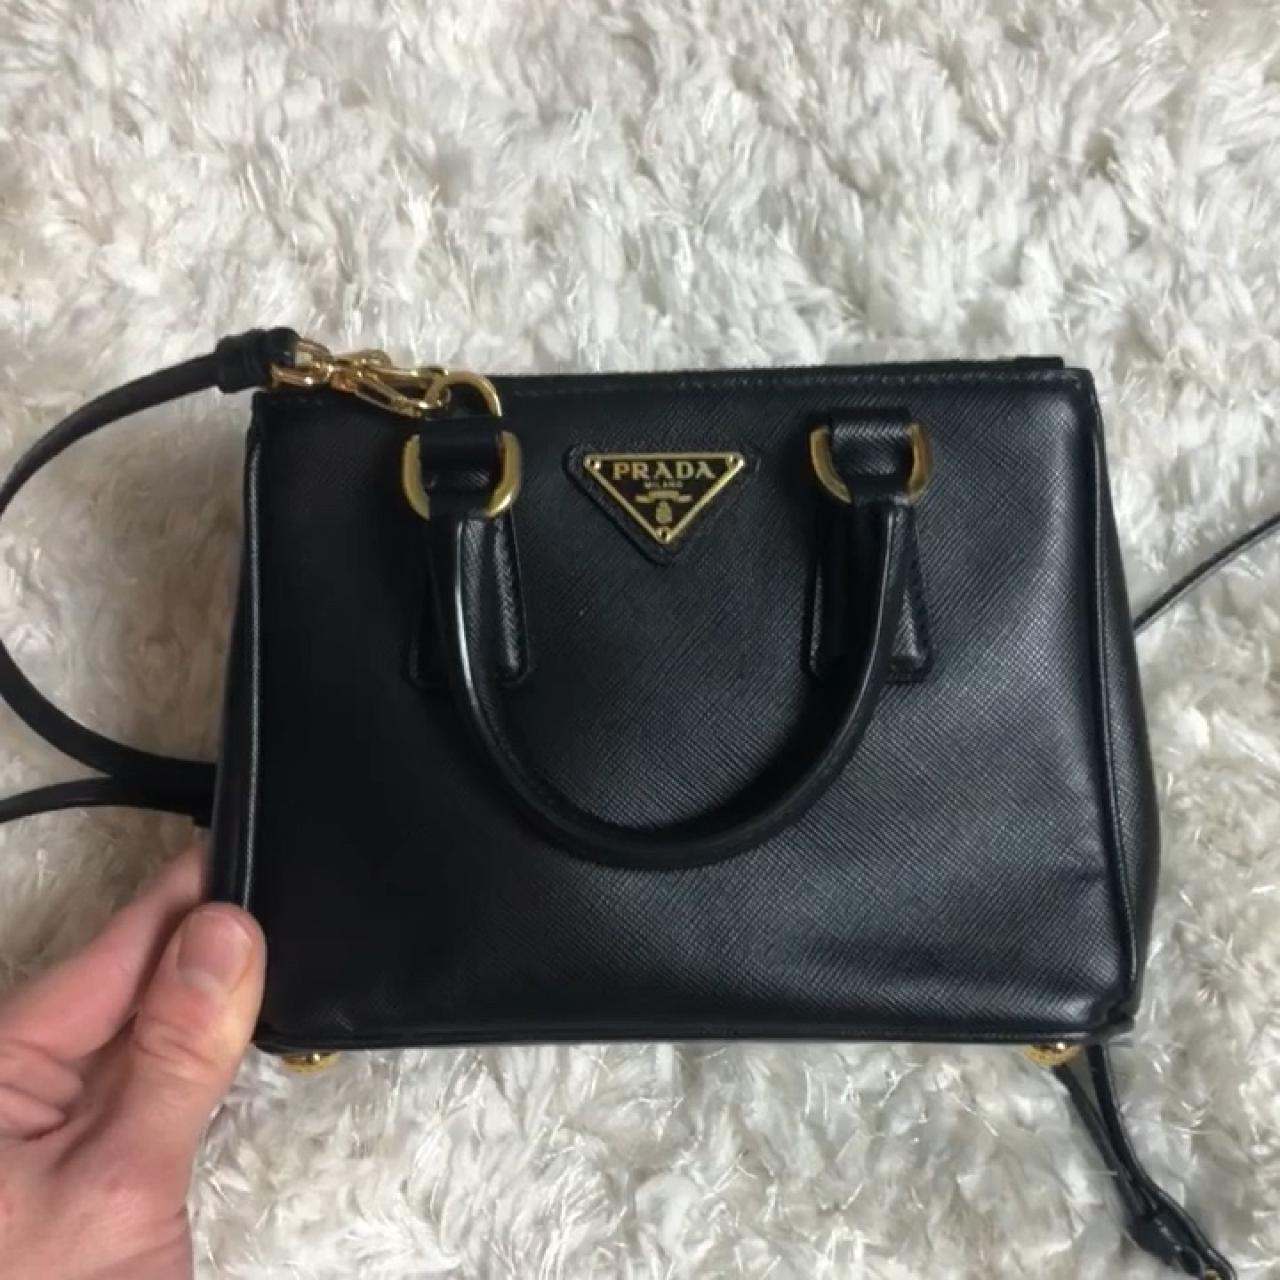 b3ef9b1710 MINI PRADA BAG!Super cute Prada mini bag in excellent condition, barely any  signs of wear! Comes with shoulder strap